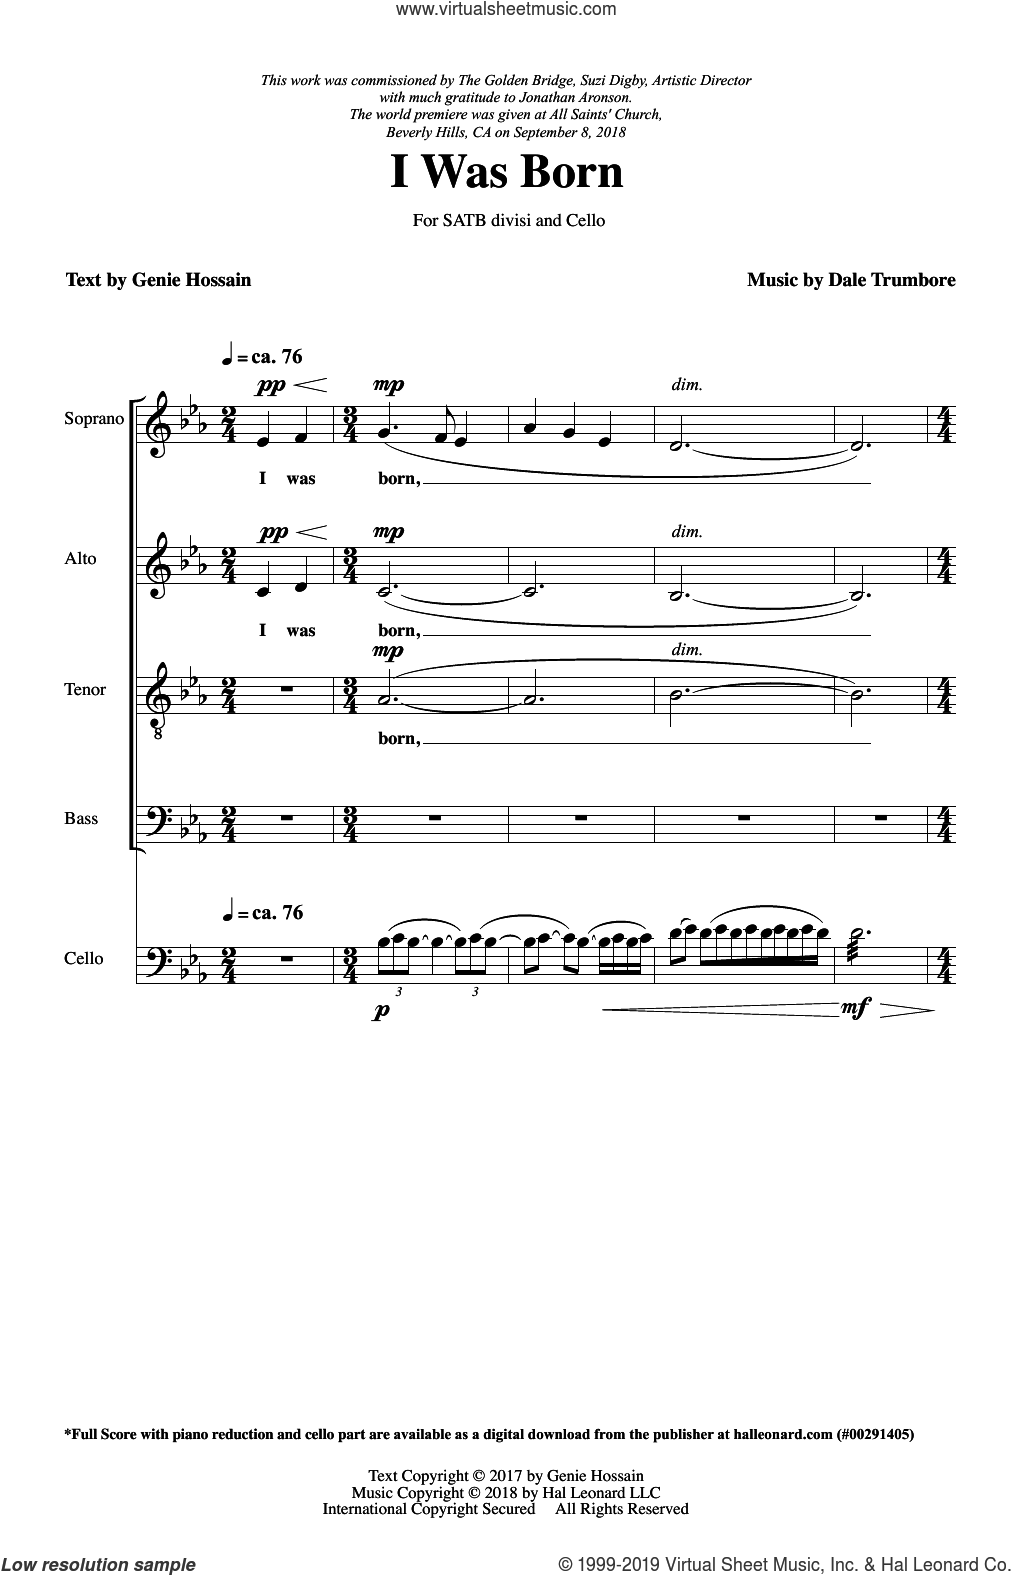 I Was Born sheet music for choir (SATB: soprano, alto, tenor, bass) by Dale Trumbore, Genie Hossain and Genie Hossain & Dale Trumbore, intermediate skill level